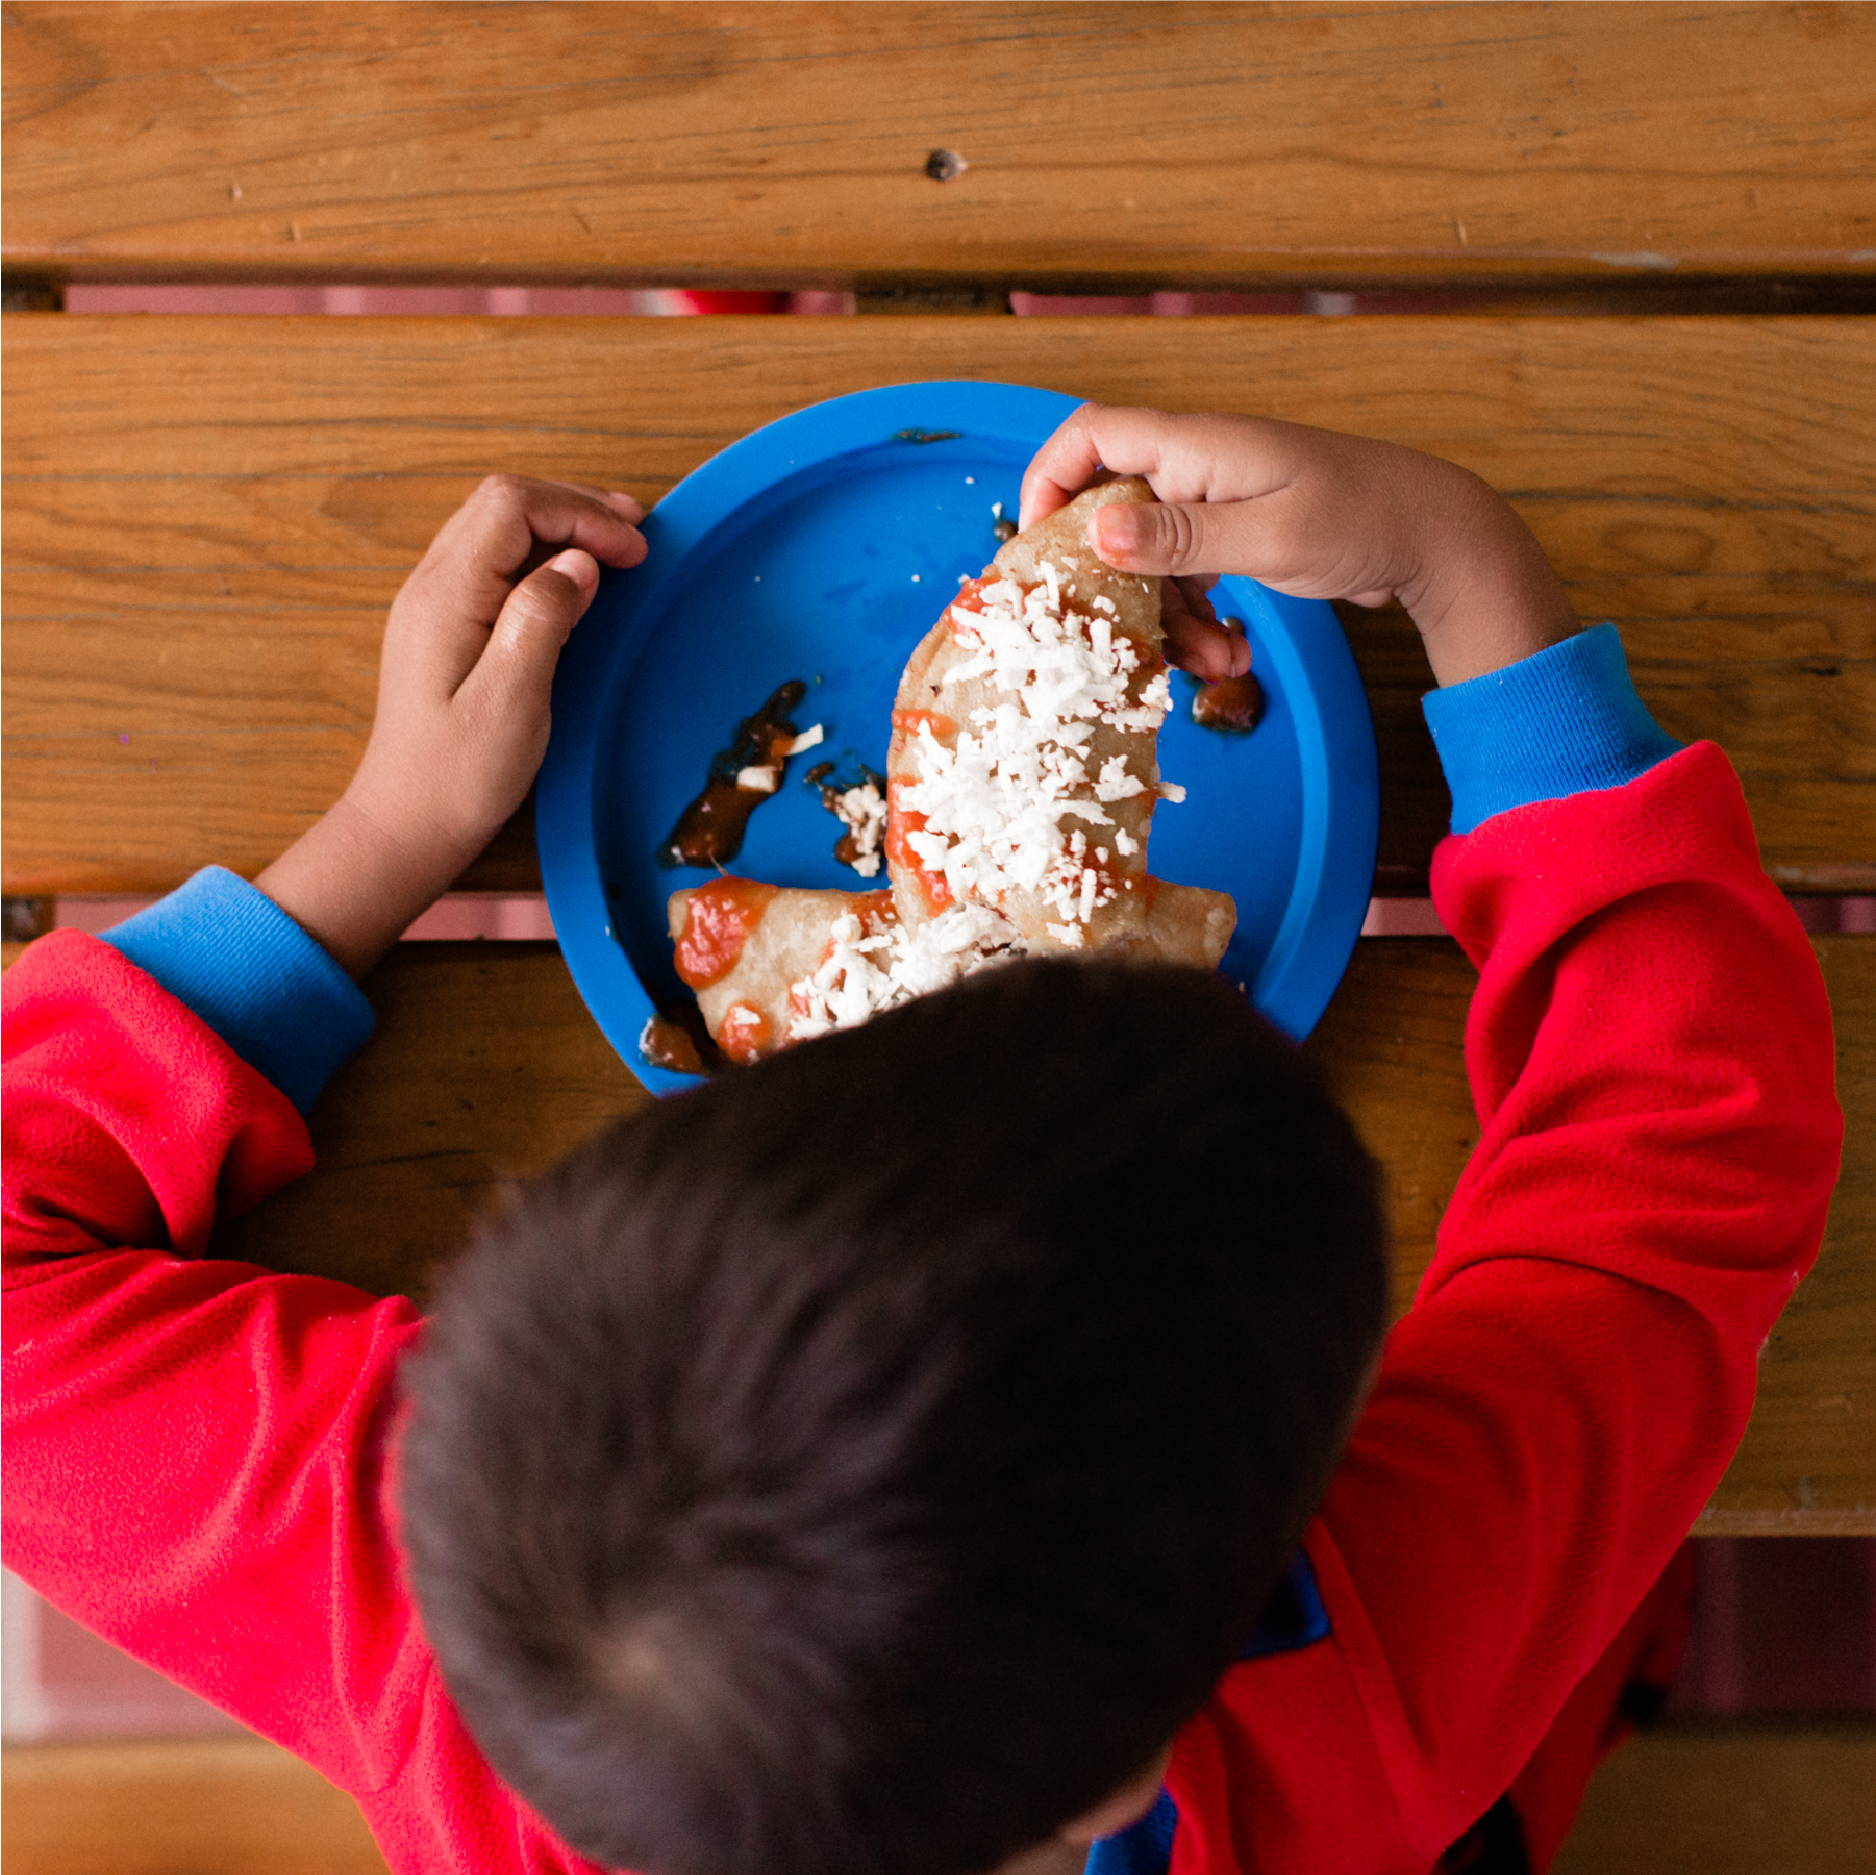 A young Honduran boy in a red shirt sits at a picnic table while eating two empanadas